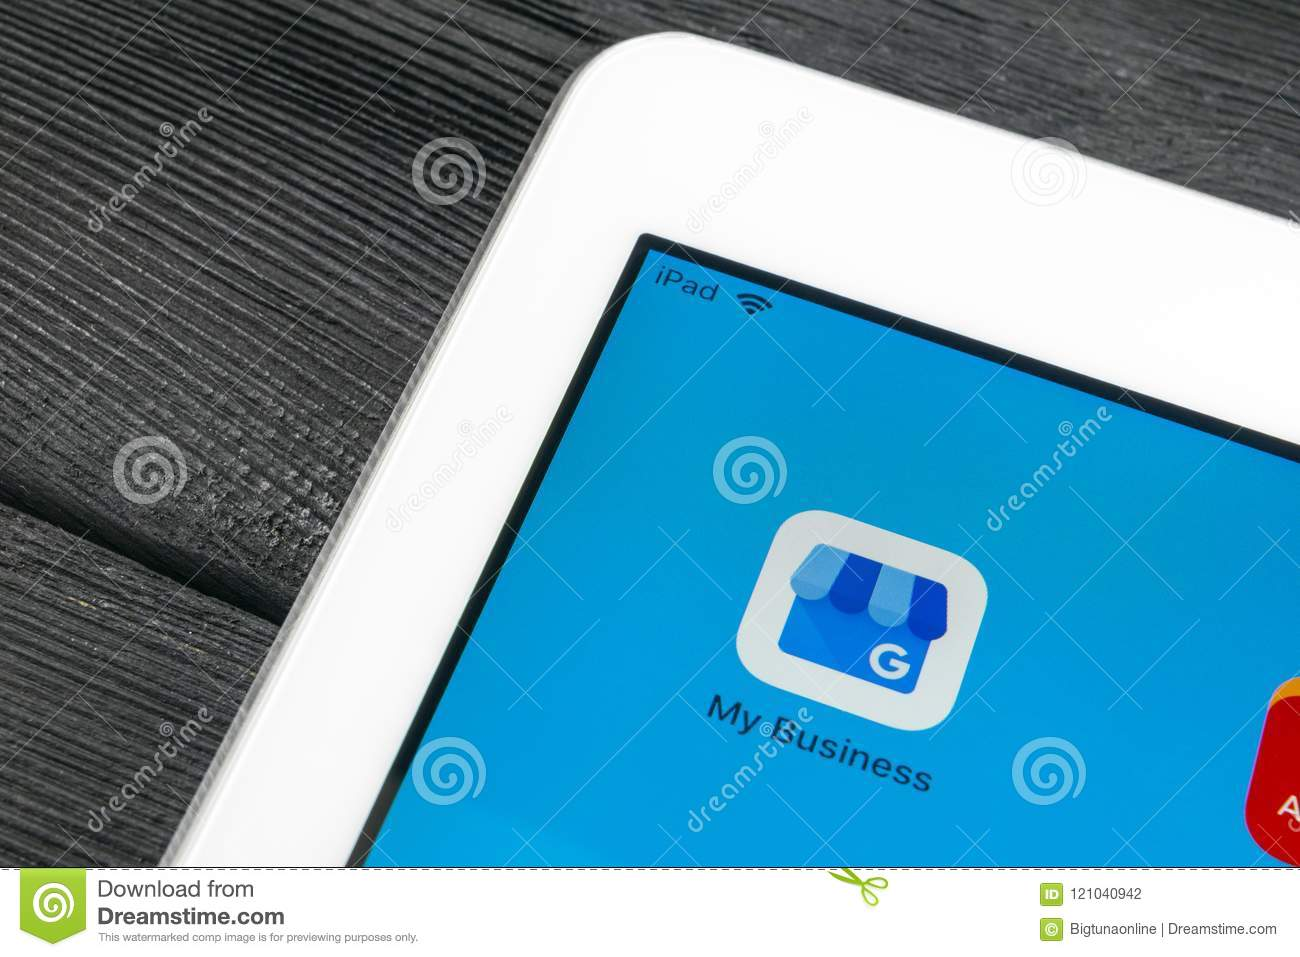 Google My Business application icon on Apple iPad Pro screen close-up. Google My Business icon. Google My business application. So